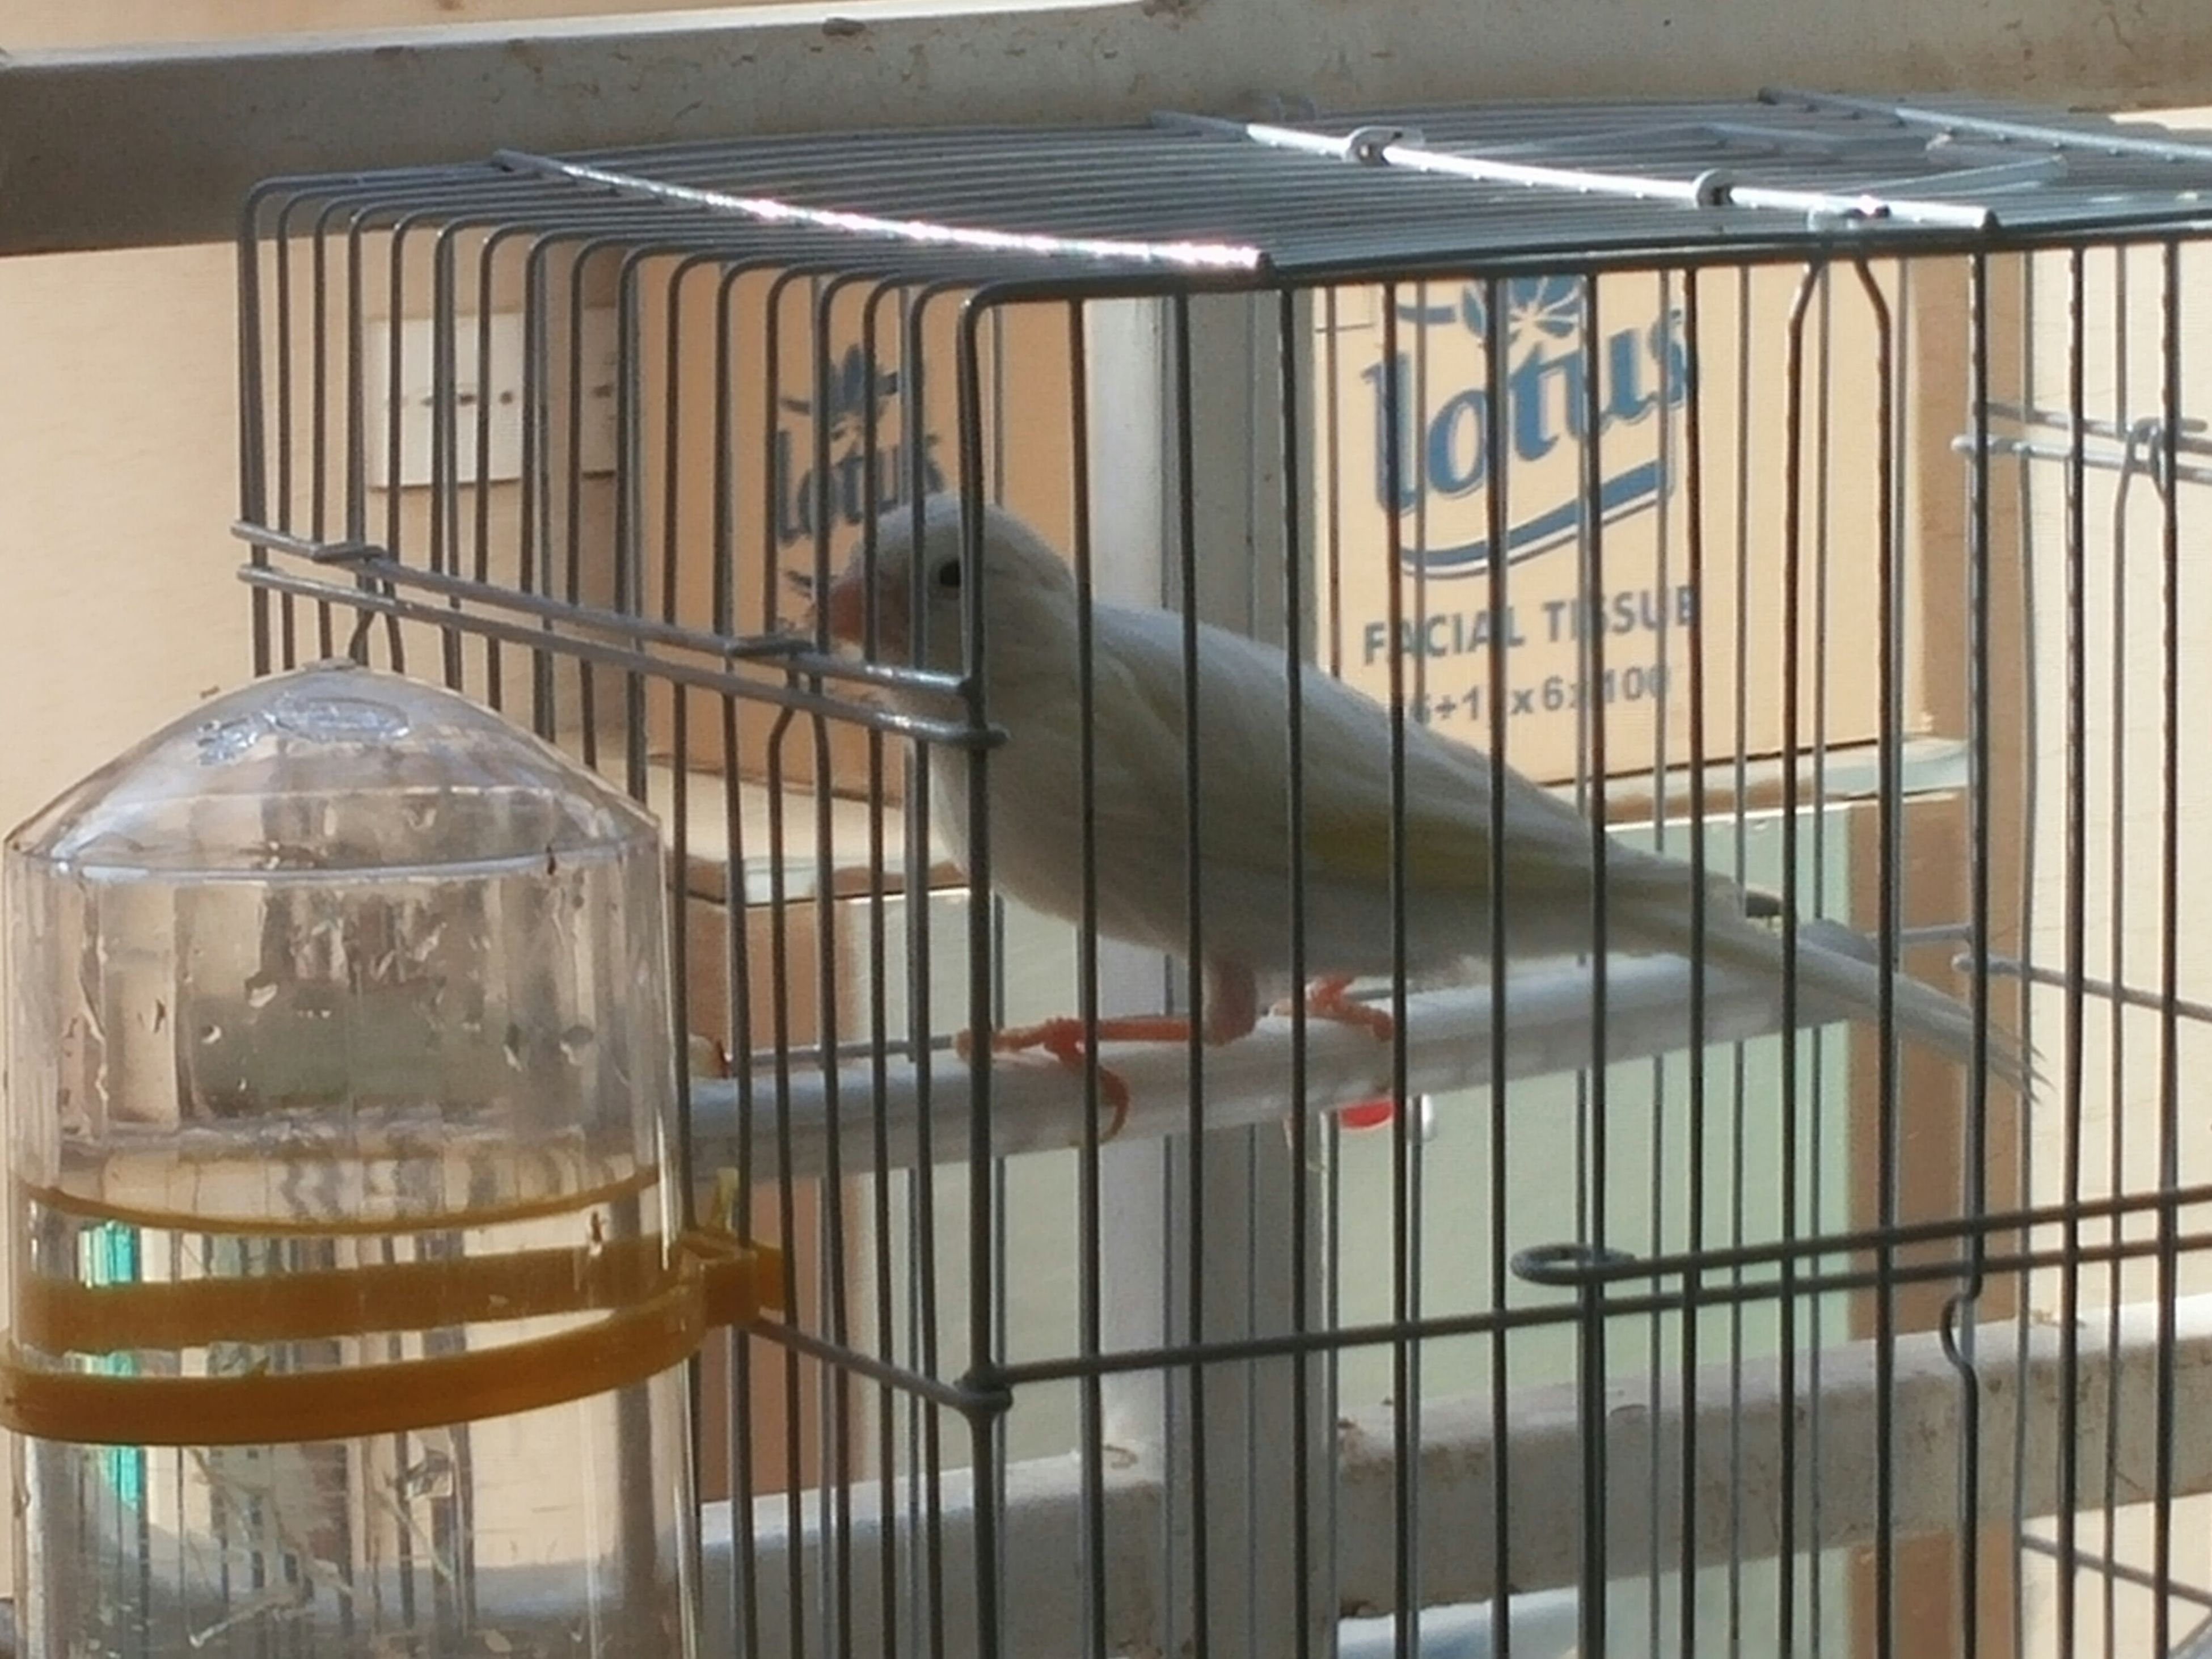 fence, animal themes, metal, built structure, railing, building exterior, architecture, day, glass - material, sunlight, no people, outdoors, one animal, protection, cage, window, pets, chair, high angle view, domestic animals